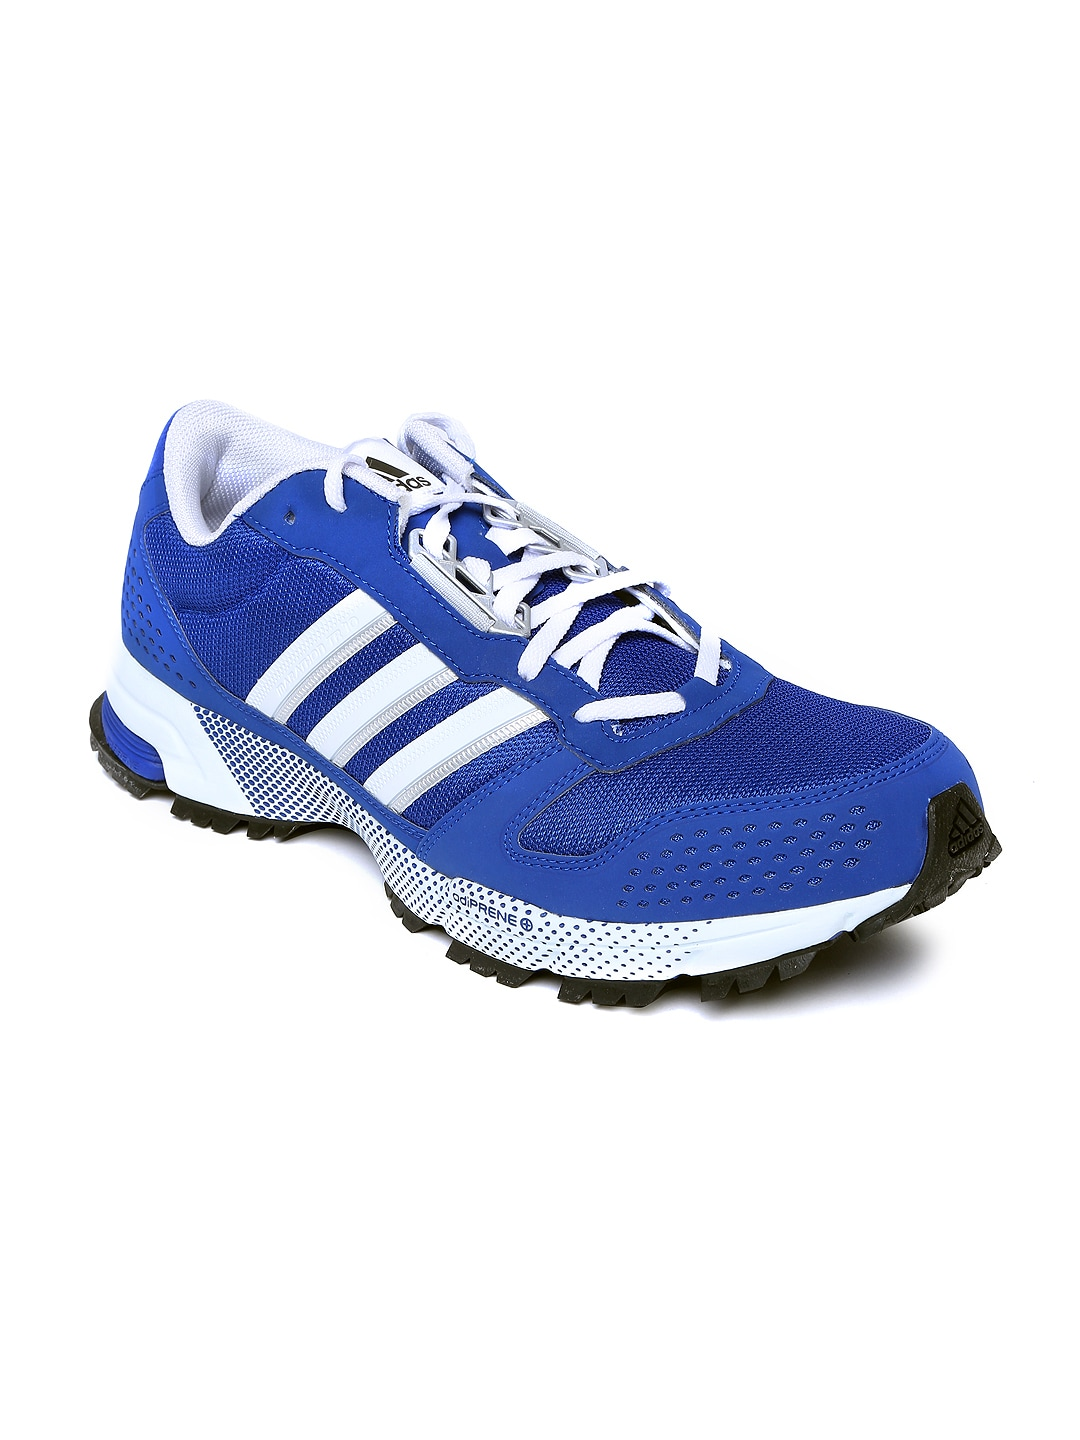 Adidas Shoes Images Price India